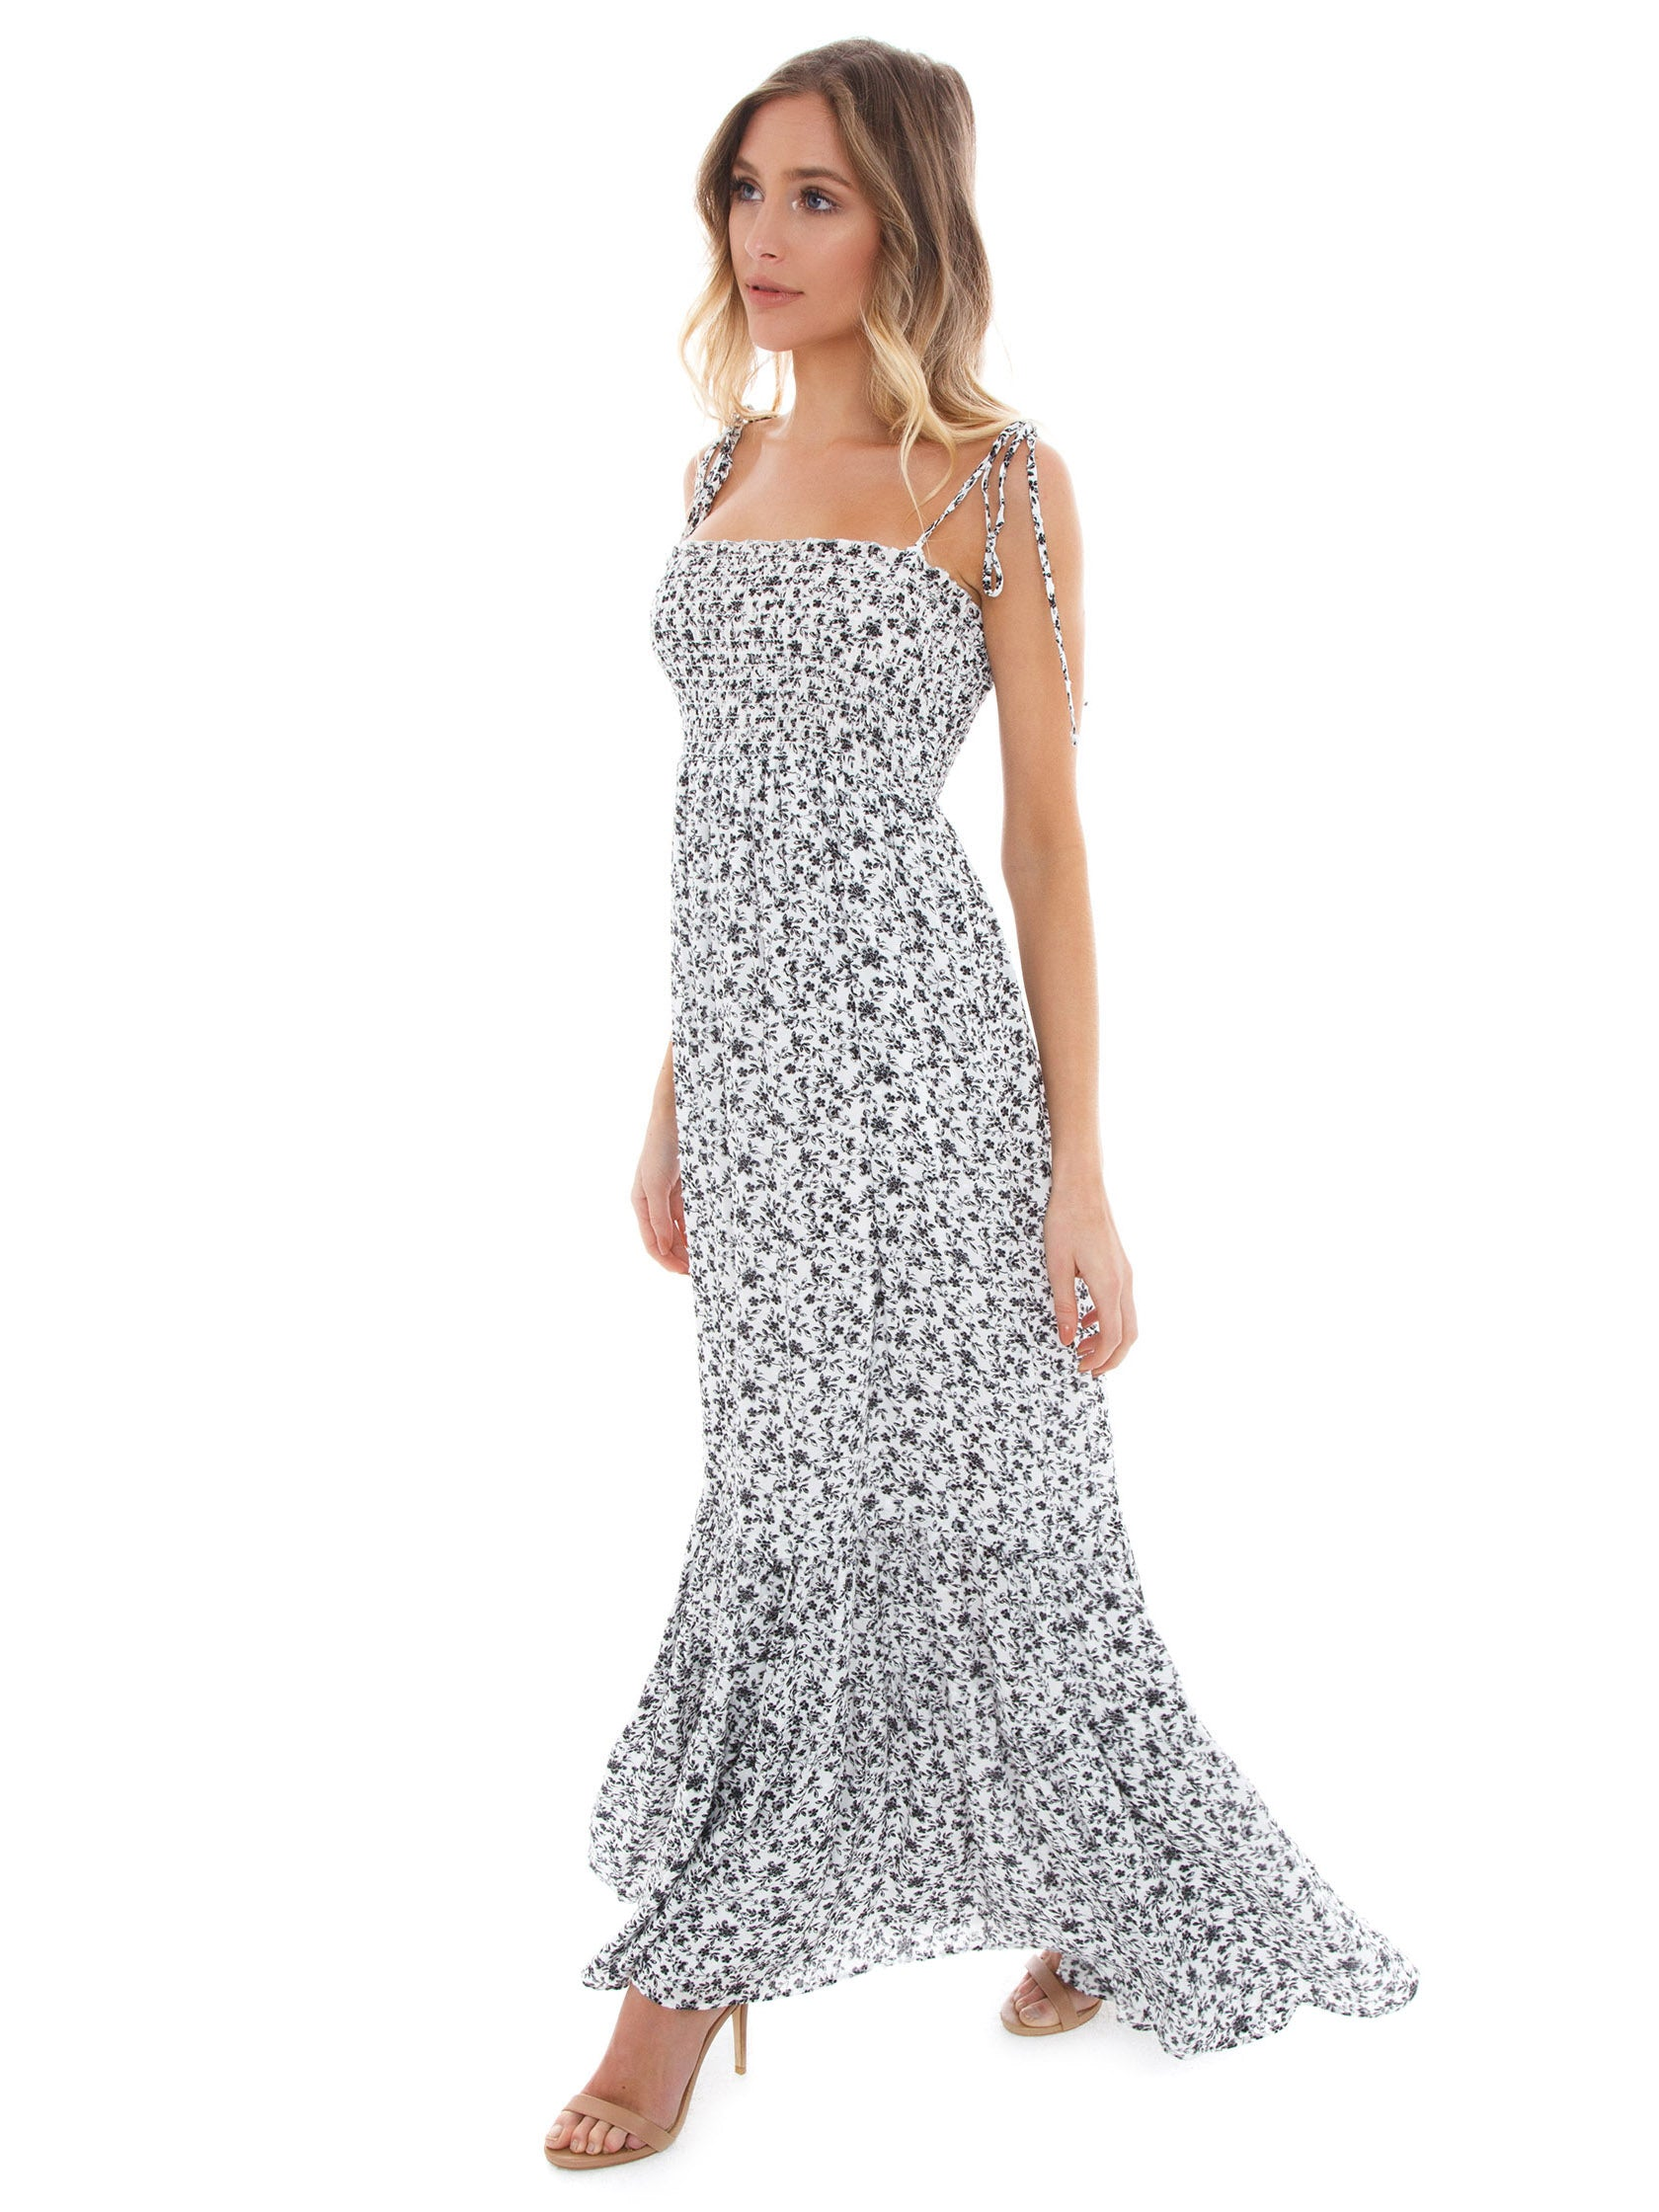 Woman wearing a dress rental from Blue Life called Summer Breeze Maxi Dress